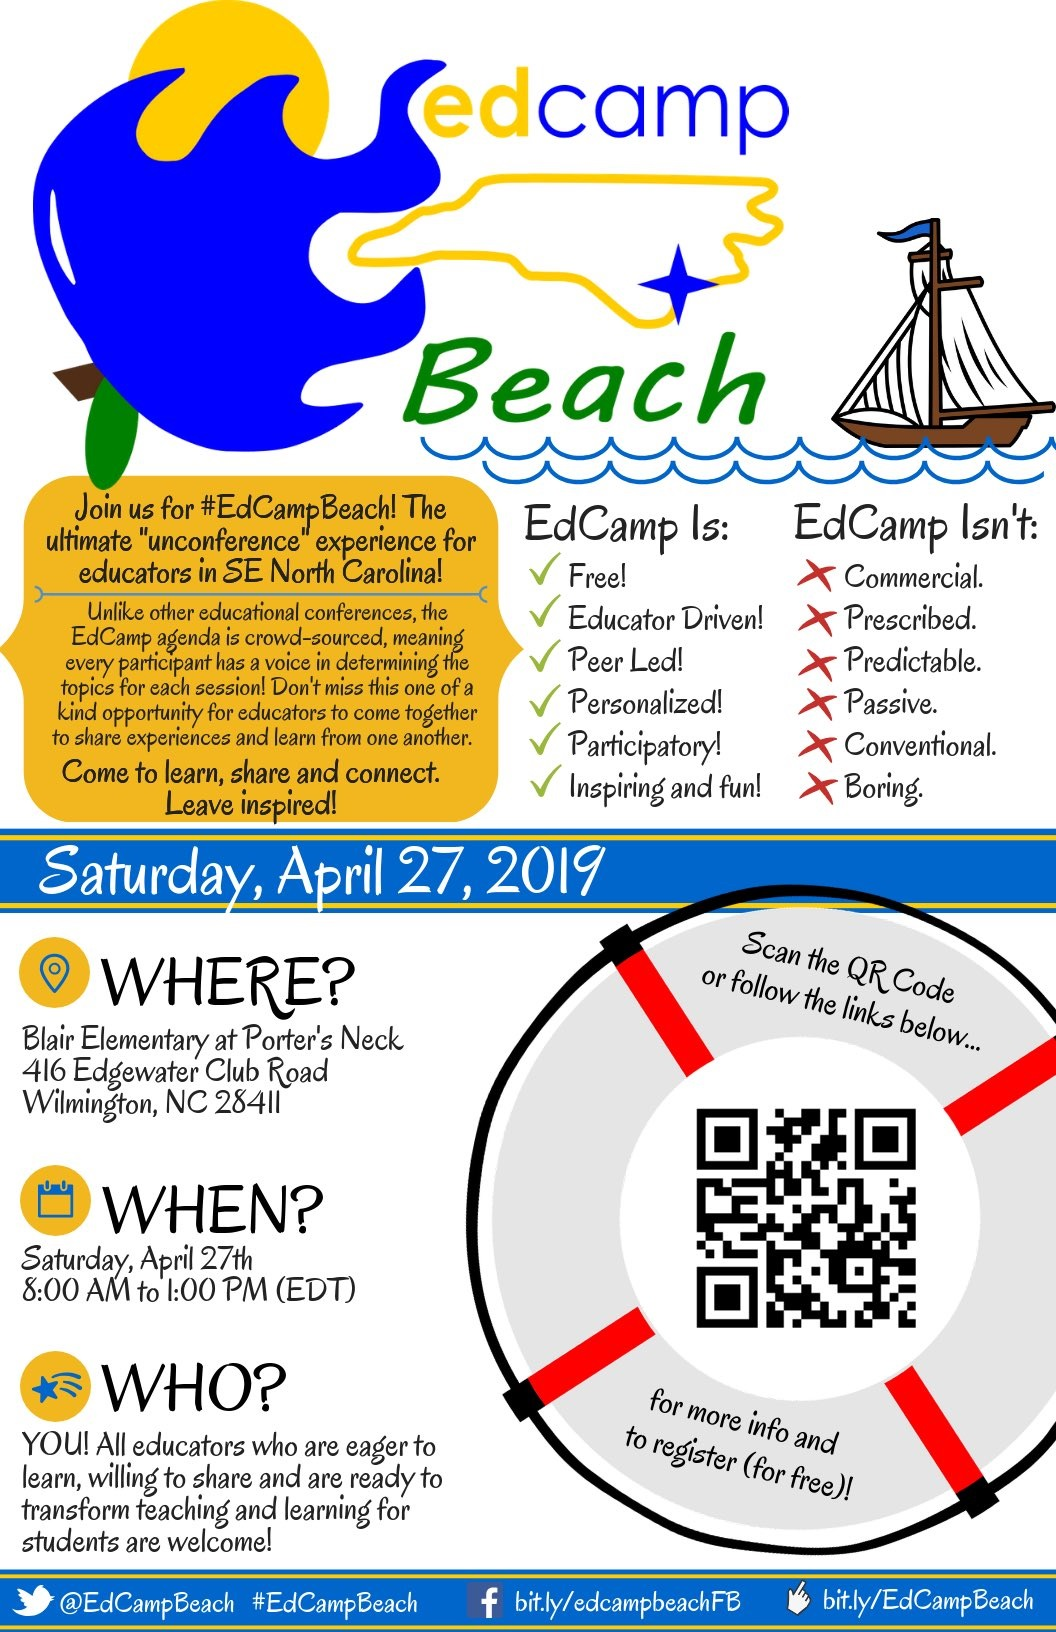 edcamp beach April 27